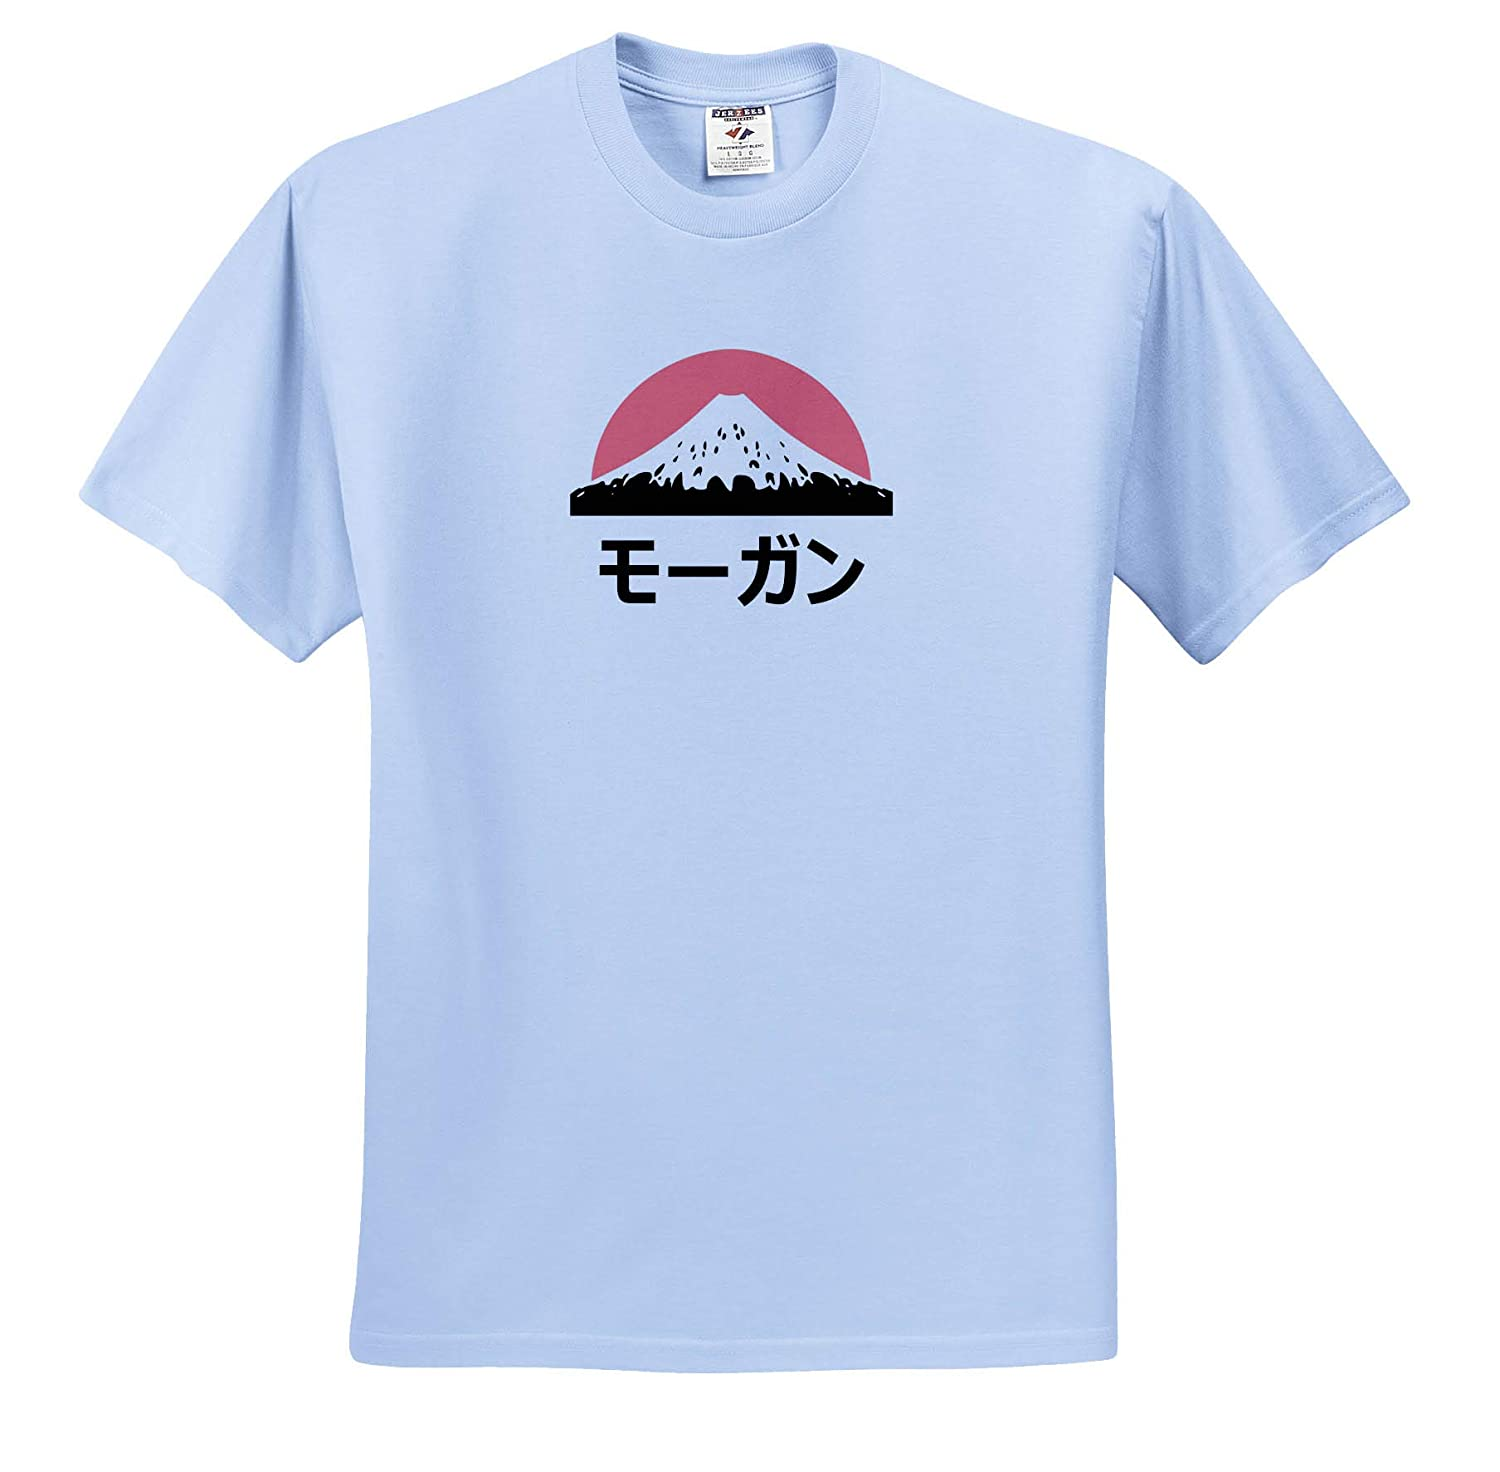 Adult T-Shirt XL Name in Japanese ts/_320589 Morgan in Japanese Letters 3dRose InspirationzStore